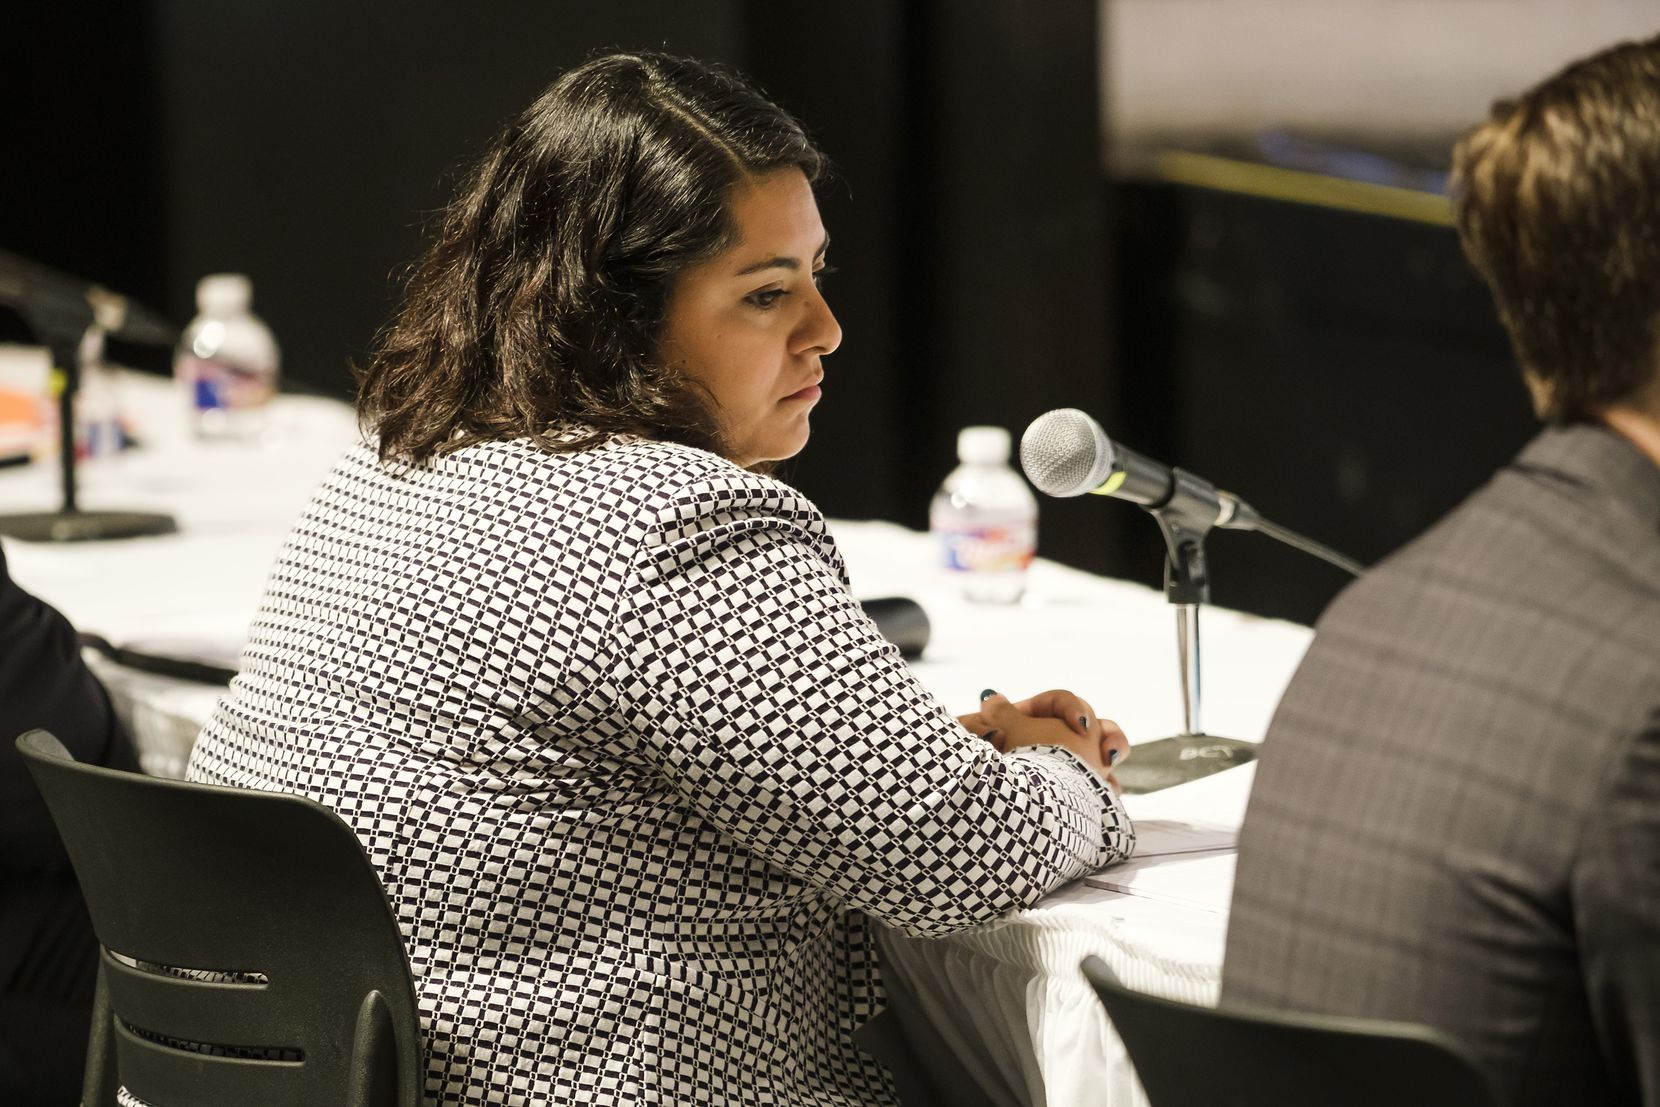 Ana Martinez, Facebook's Southwest head of public policy and community engagement, listens to testimony during a Texas House Select Committee on Mass Violence Prevention and Community Safety hearing at Brookhaven College on Thursday, Oct. 10, 2019, in Dallas.  The meeting is one of several the committee is holding across the state following the recent mass shootings in El Paso and Odessa.